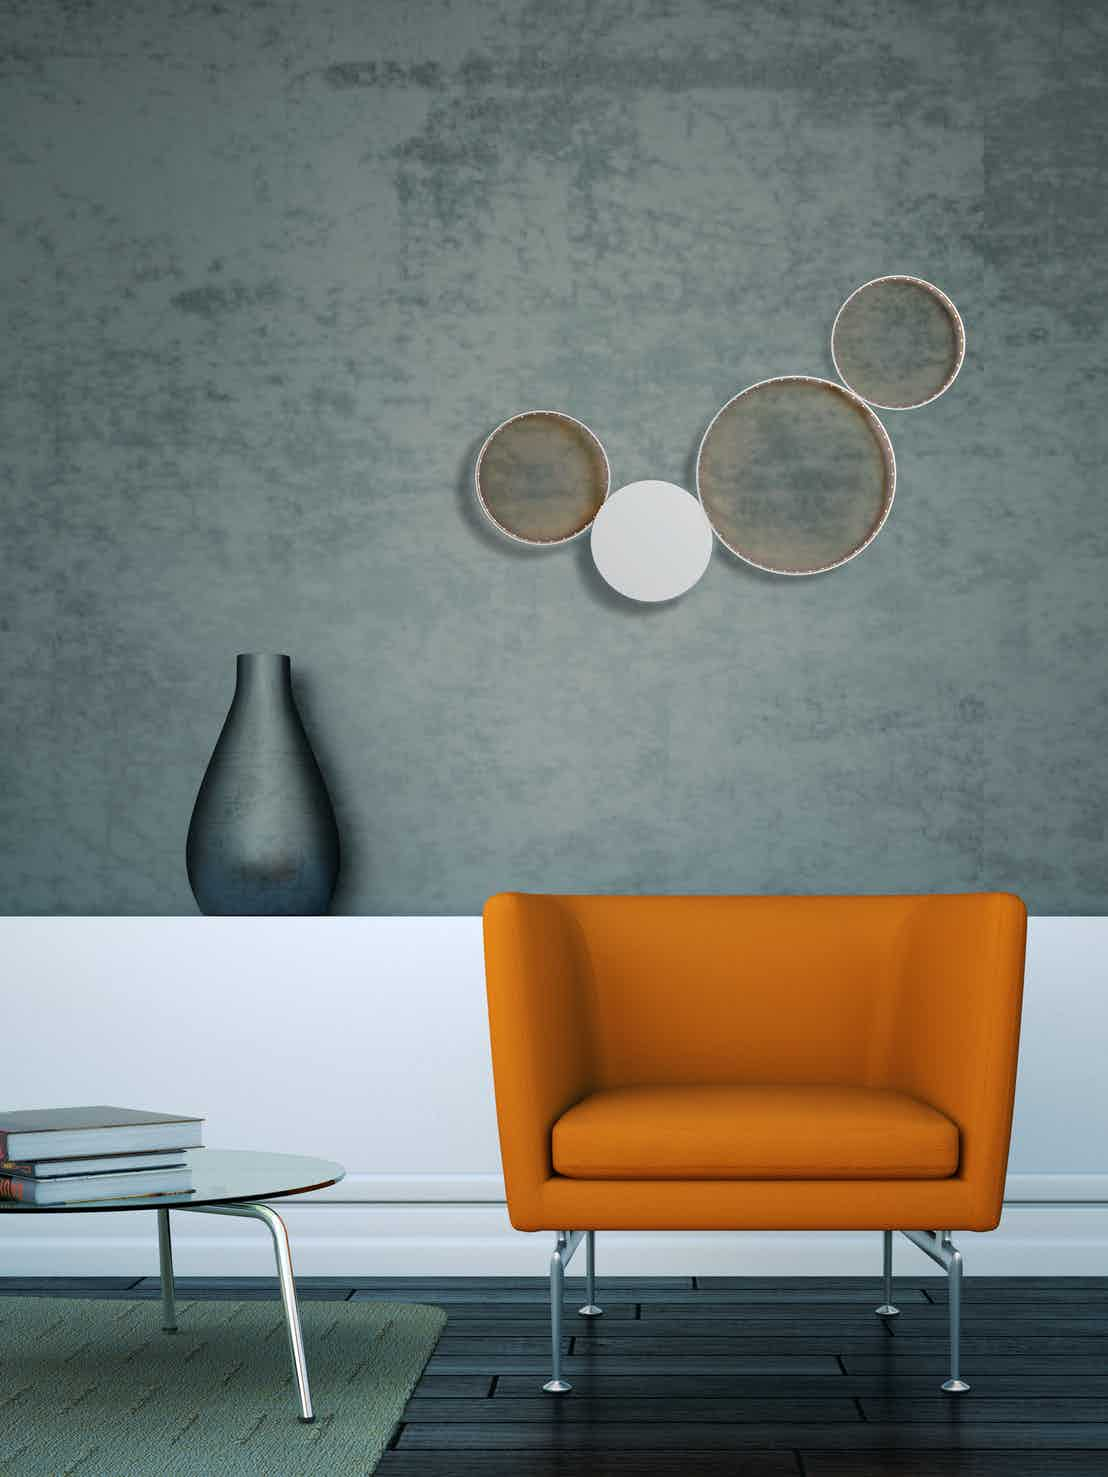 Le-deun-luminaires-sirius-wall-lamp-white-orange-chair-haute-living